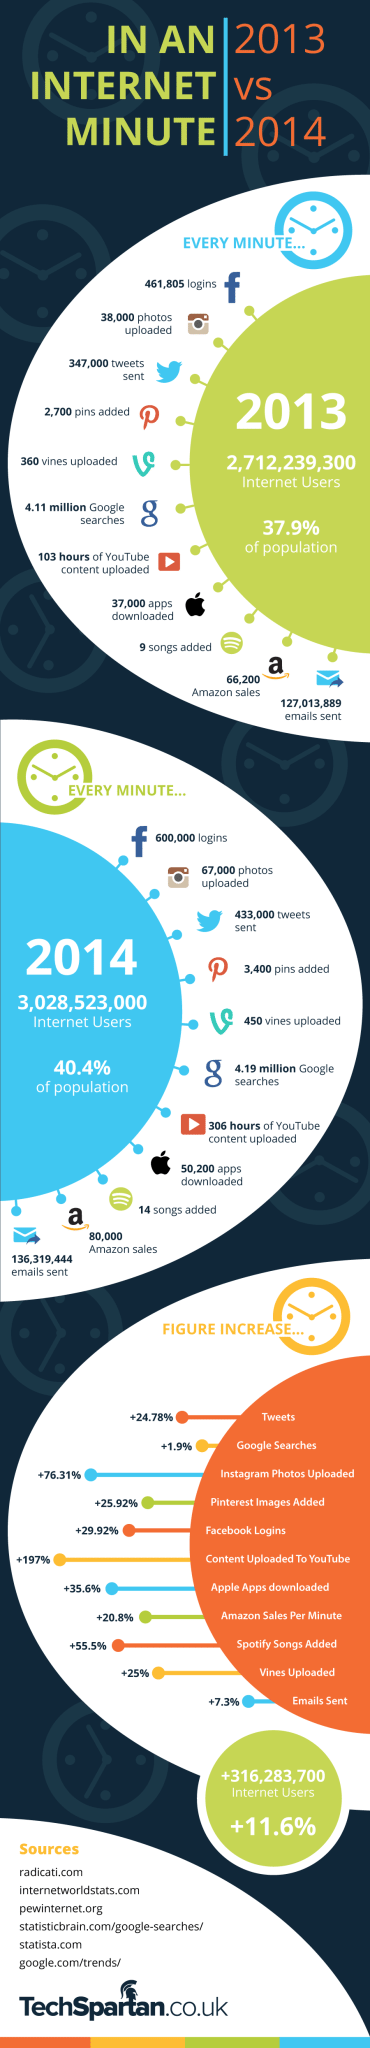 holy_kaw_in_an_internet_minute_2014